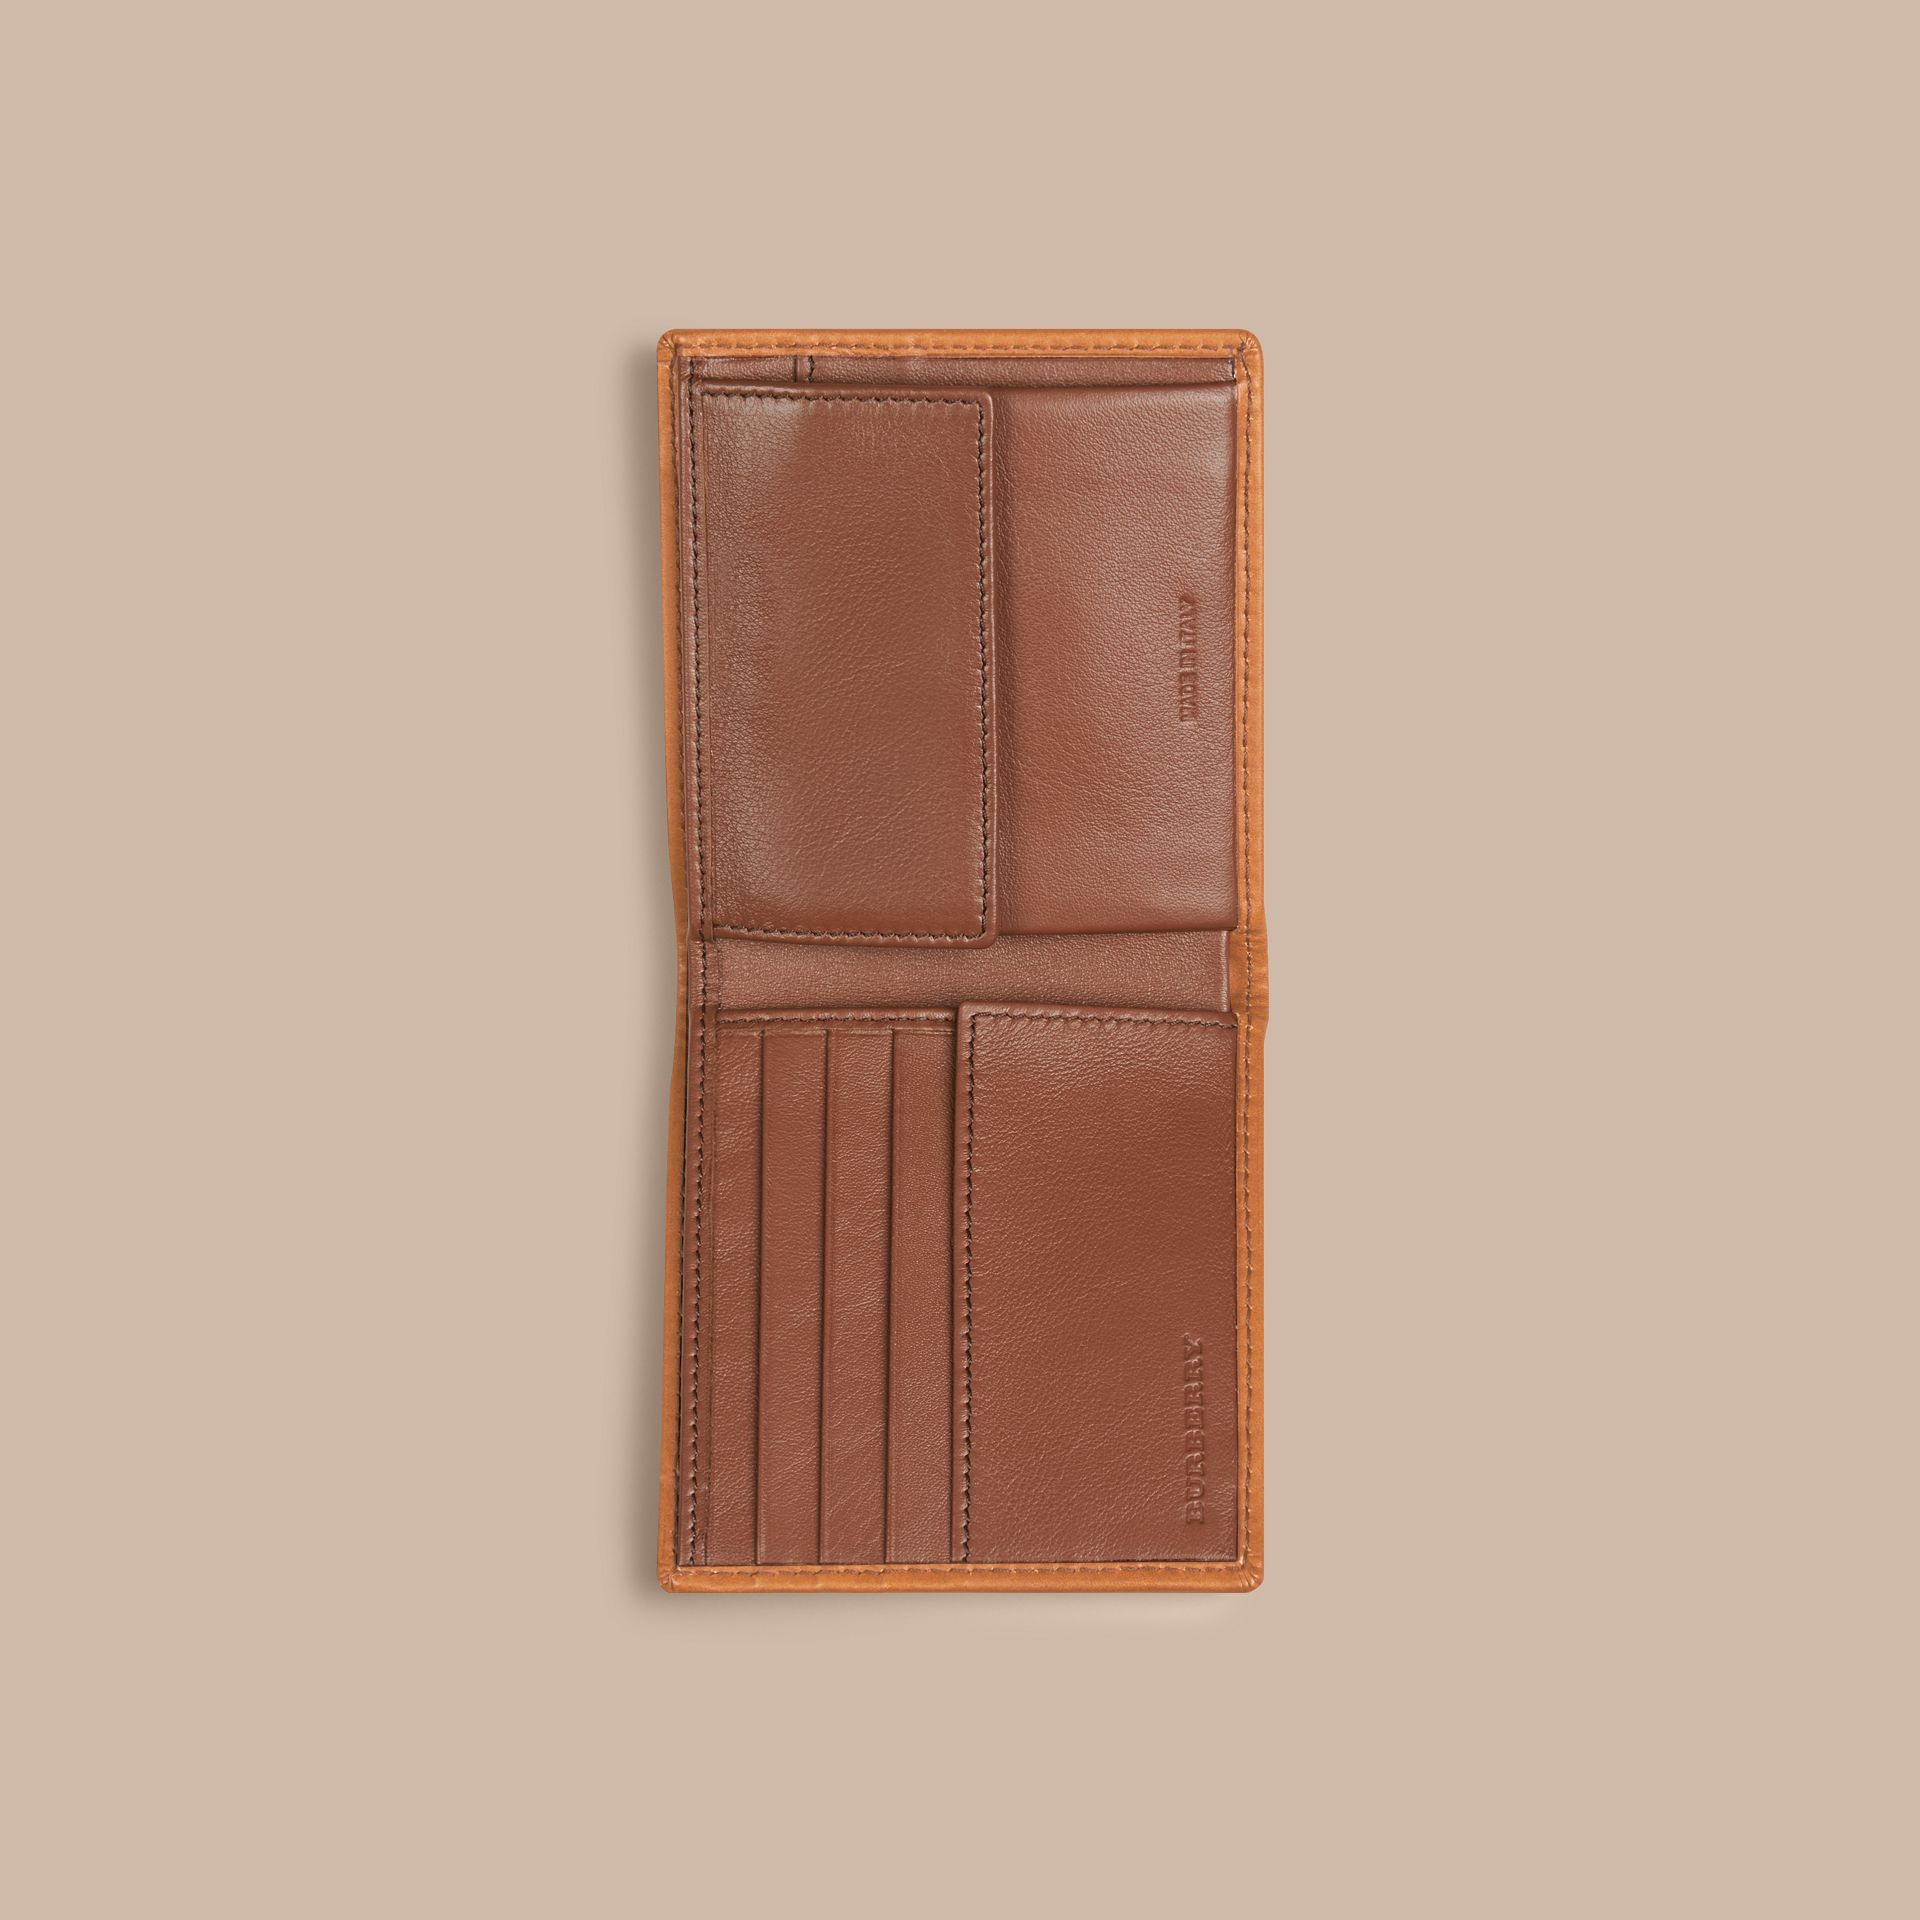 Horseferry Check International Bifold Coin Wallet in Tan - Men | Burberry Australia - gallery image 4